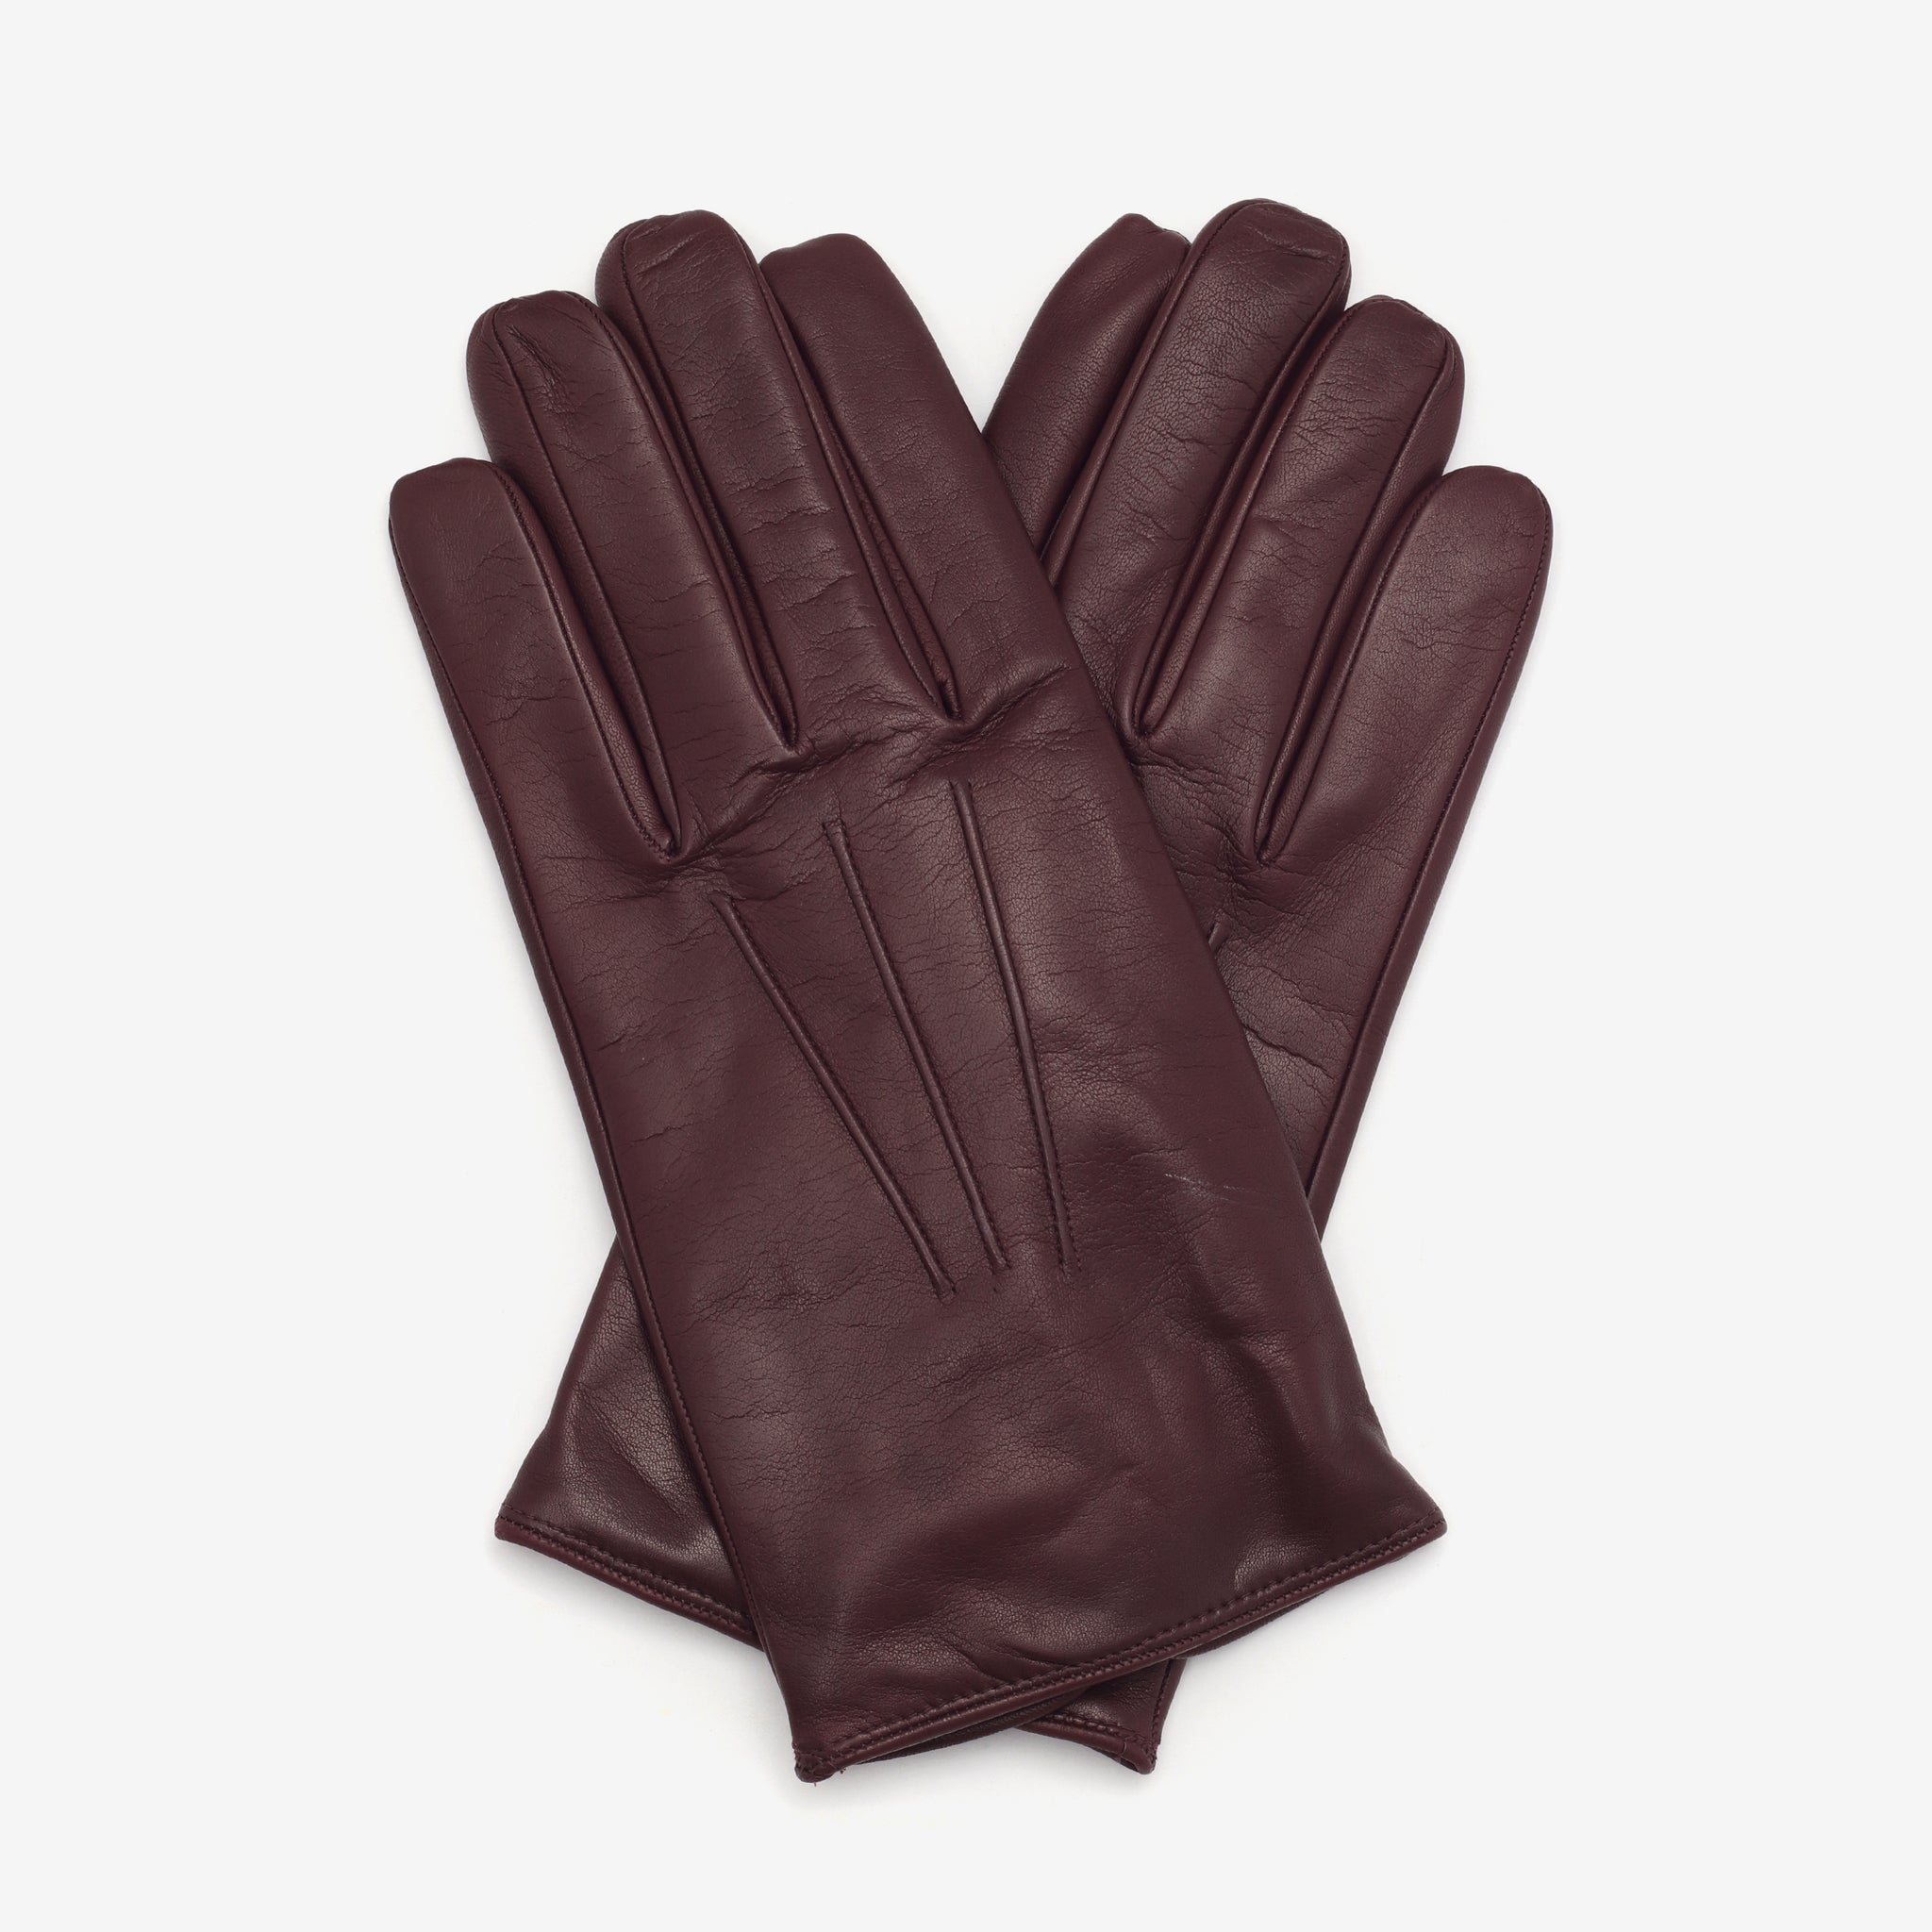 Cashmere Lined Nappa Gloves - Burgundy